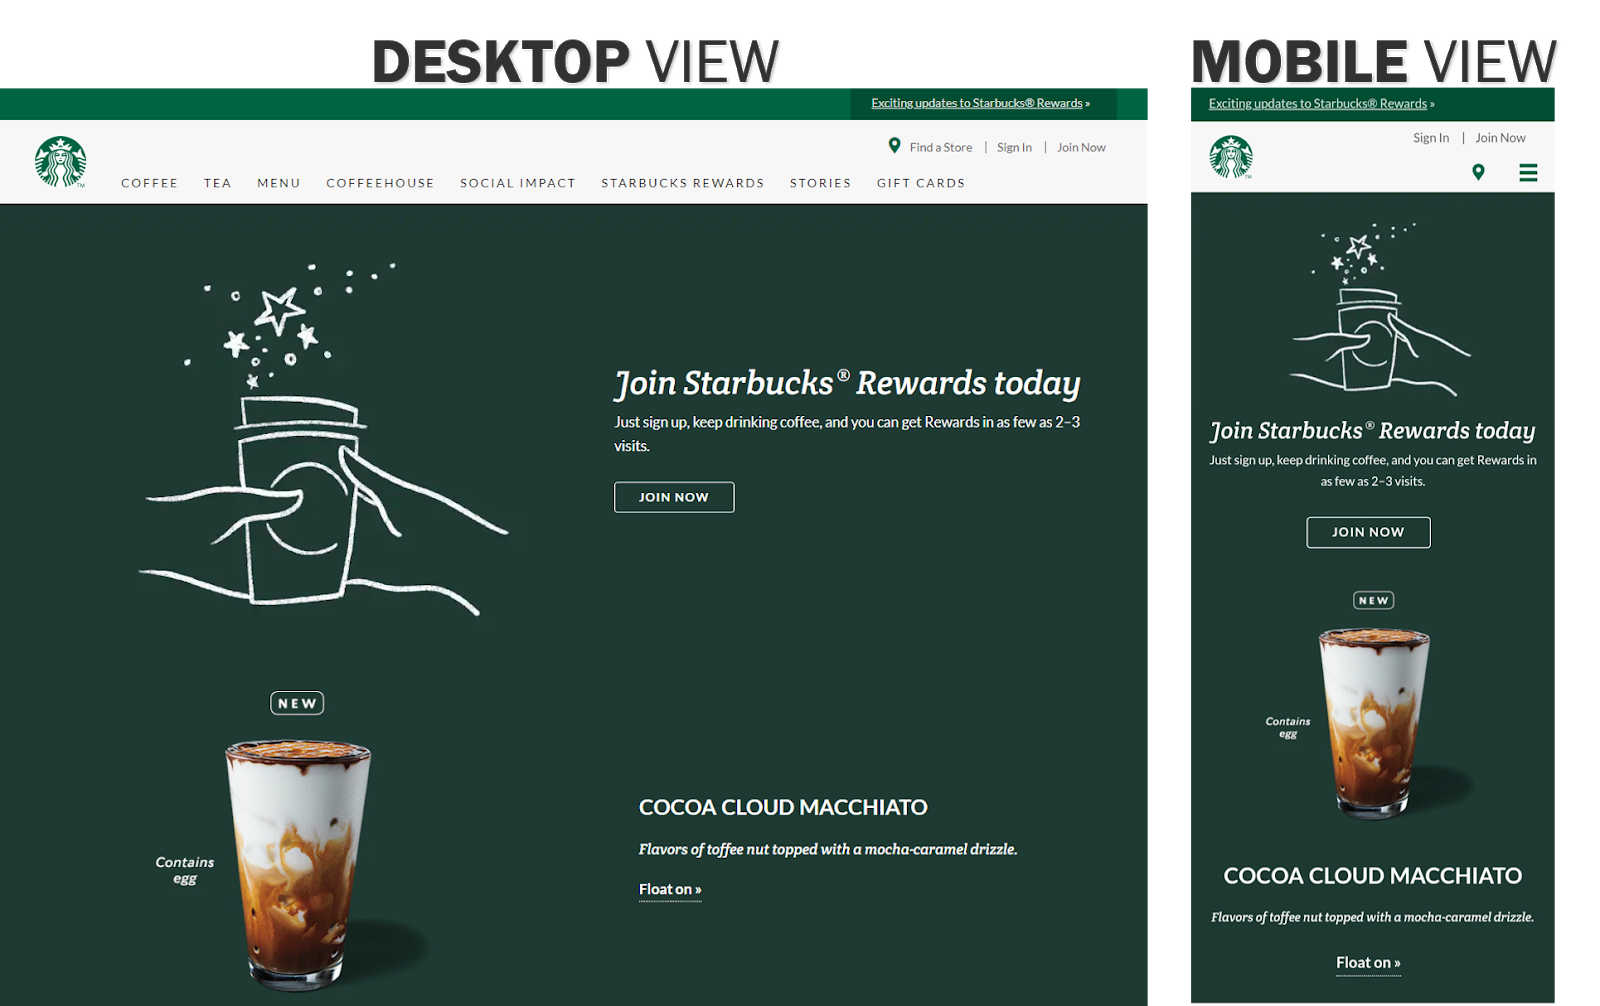 Adaptive Vs Responsive Design Which Is Better Webflow Blog,High End Residential Interior Design